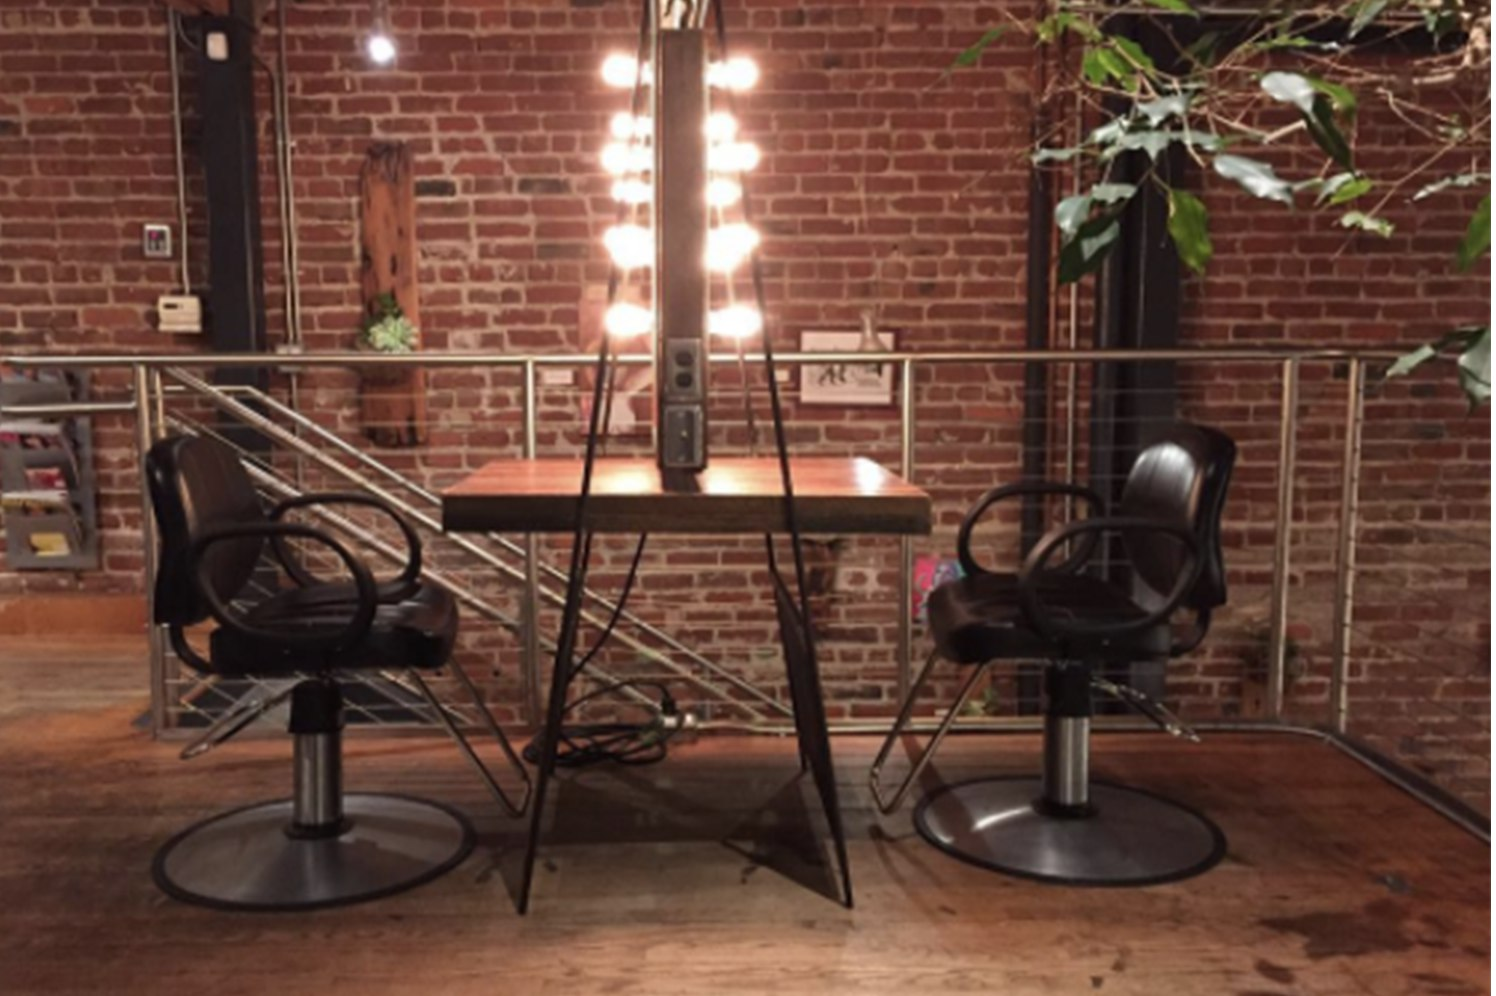 salon chairs with a brick wall in the background